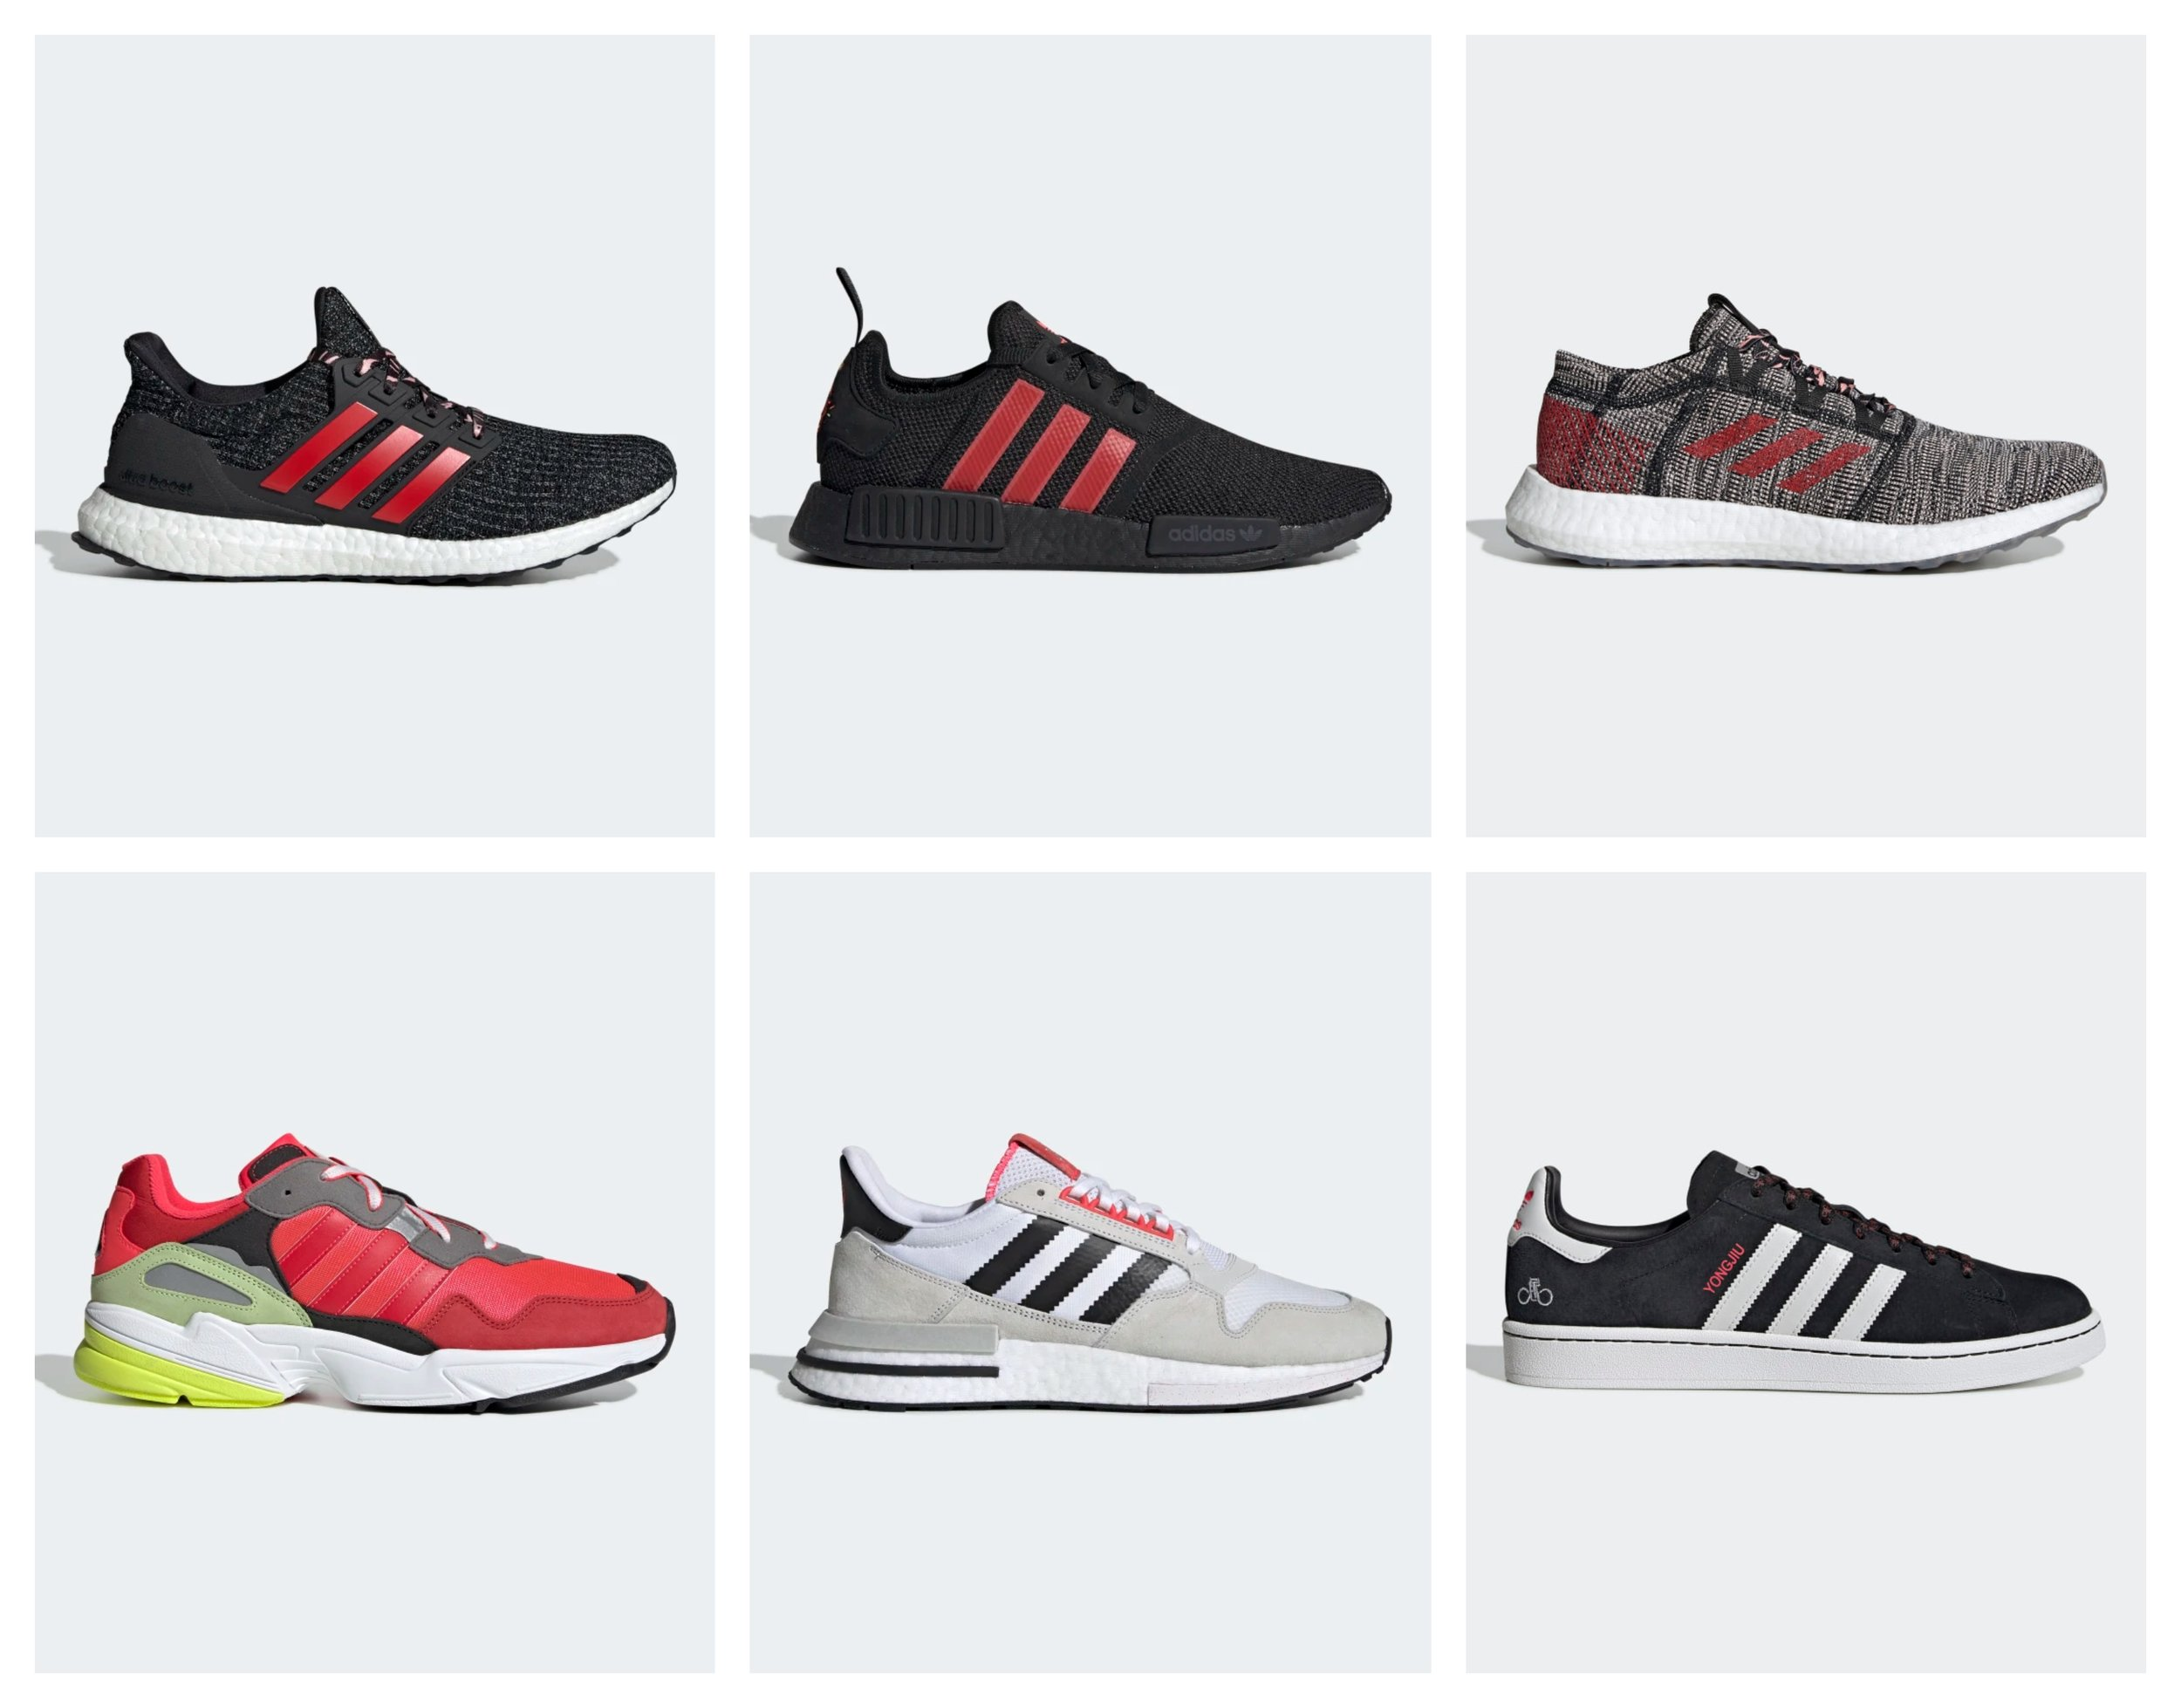 adidas BOOST Collection Sold for $7,000 USD | Sneakers Magazine